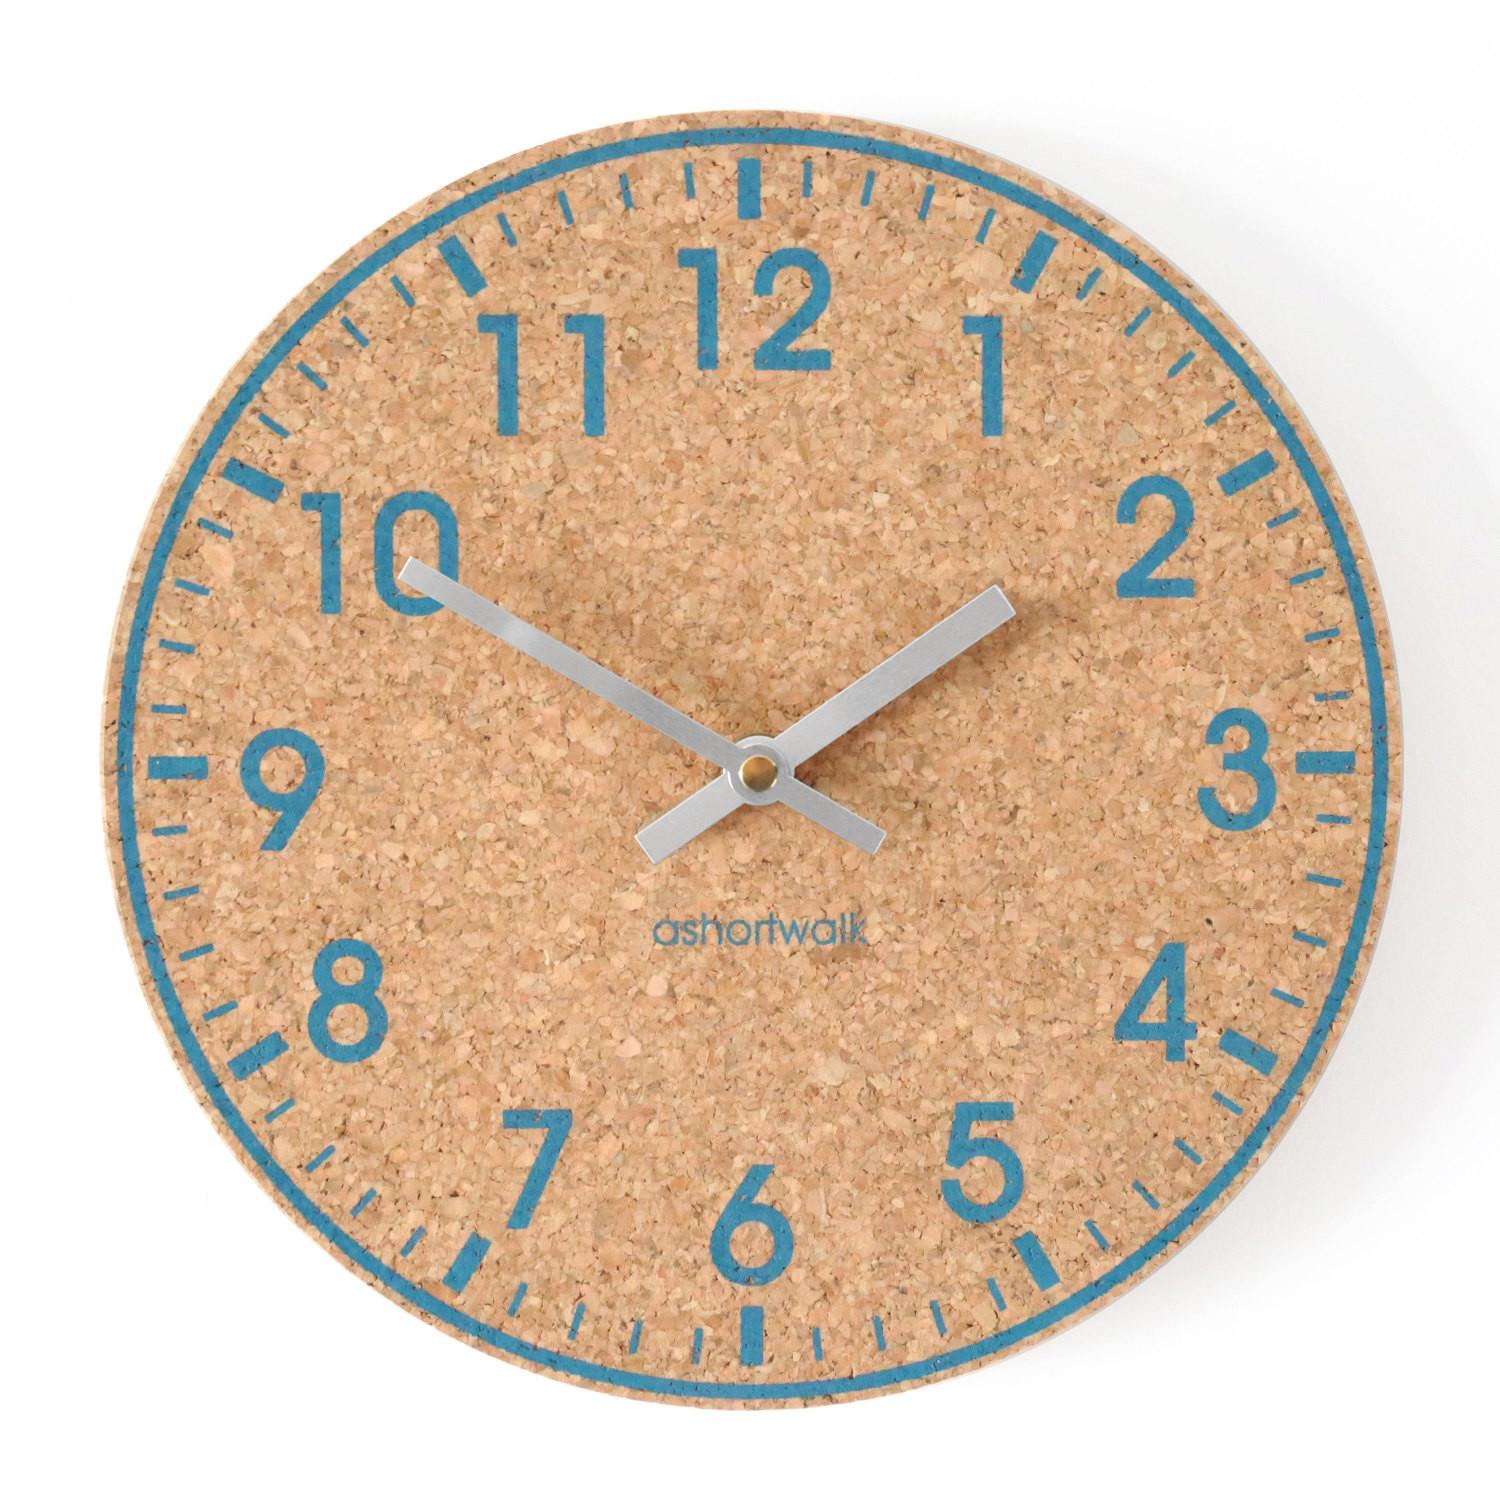 Eco Cork Wall Clock Blue Silver Hands